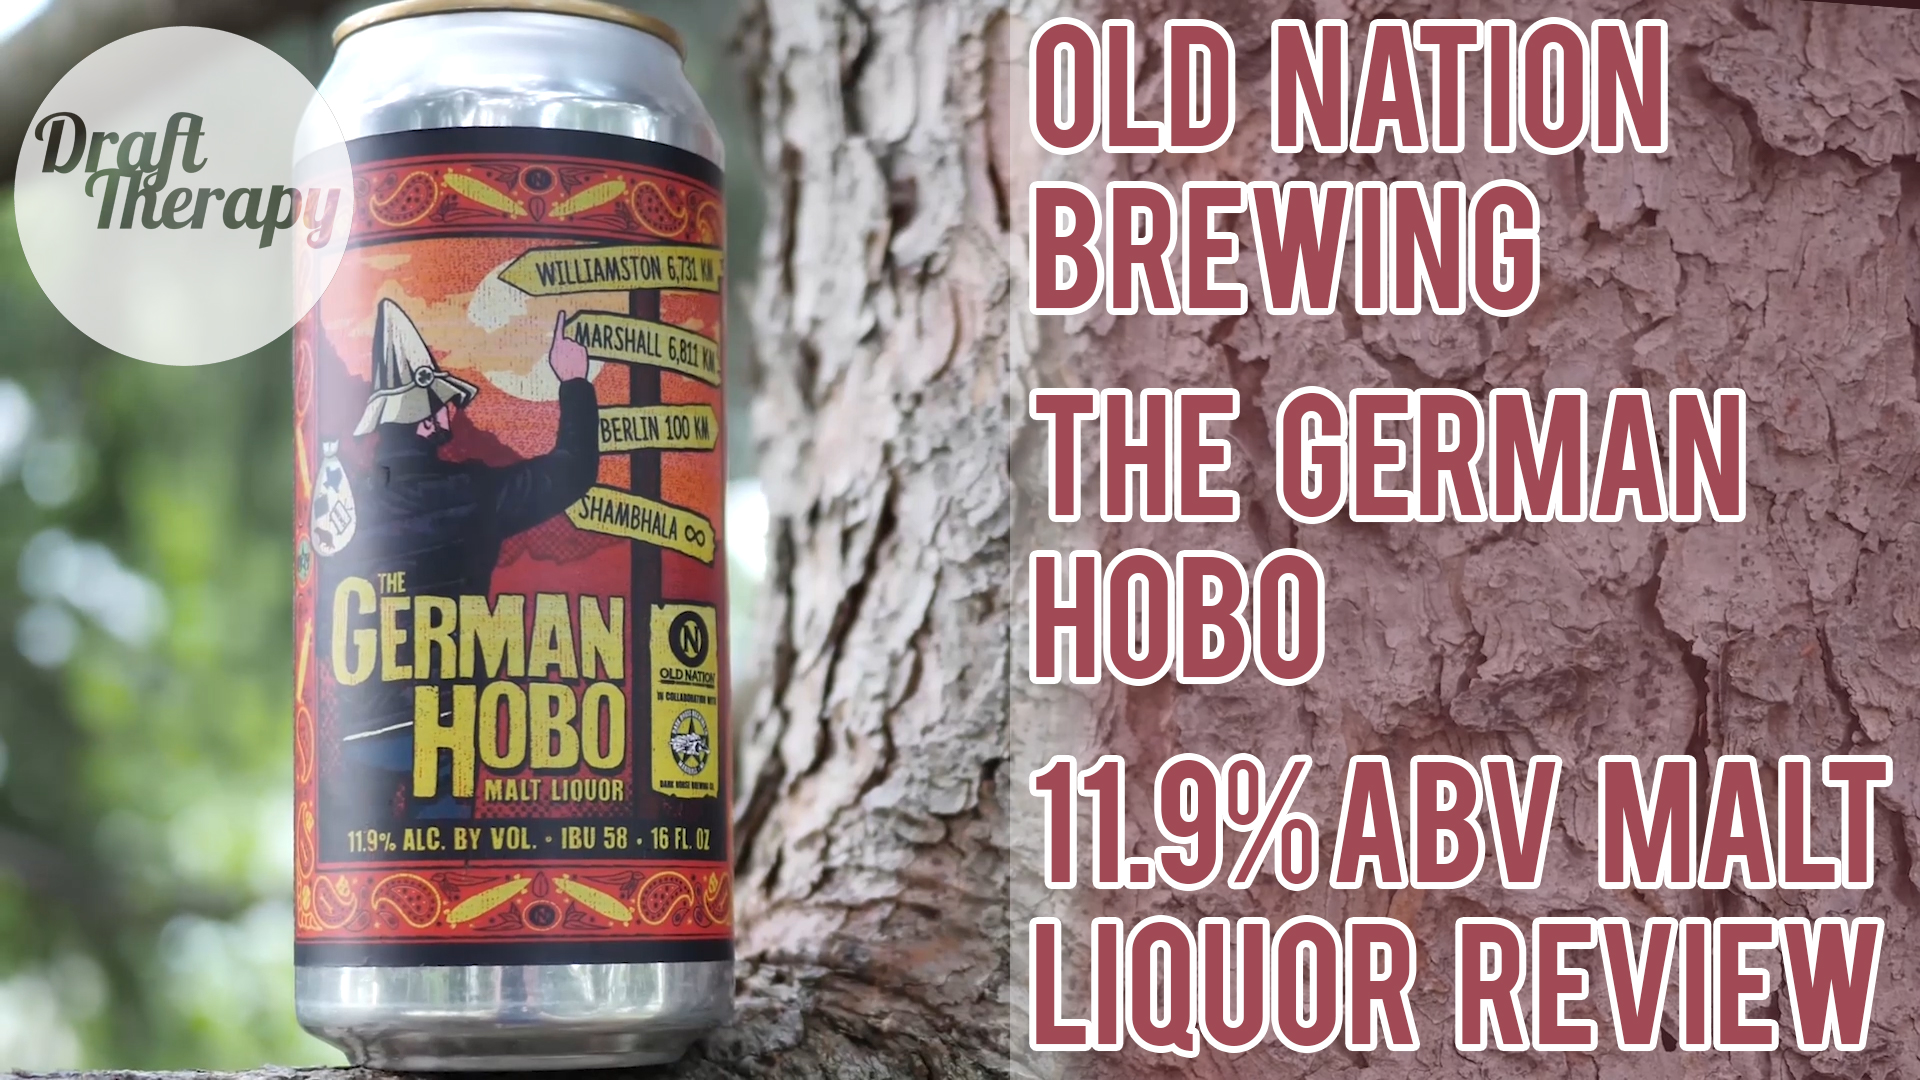 Old Nation Brewing's The German Hobo Malt Liquor Review